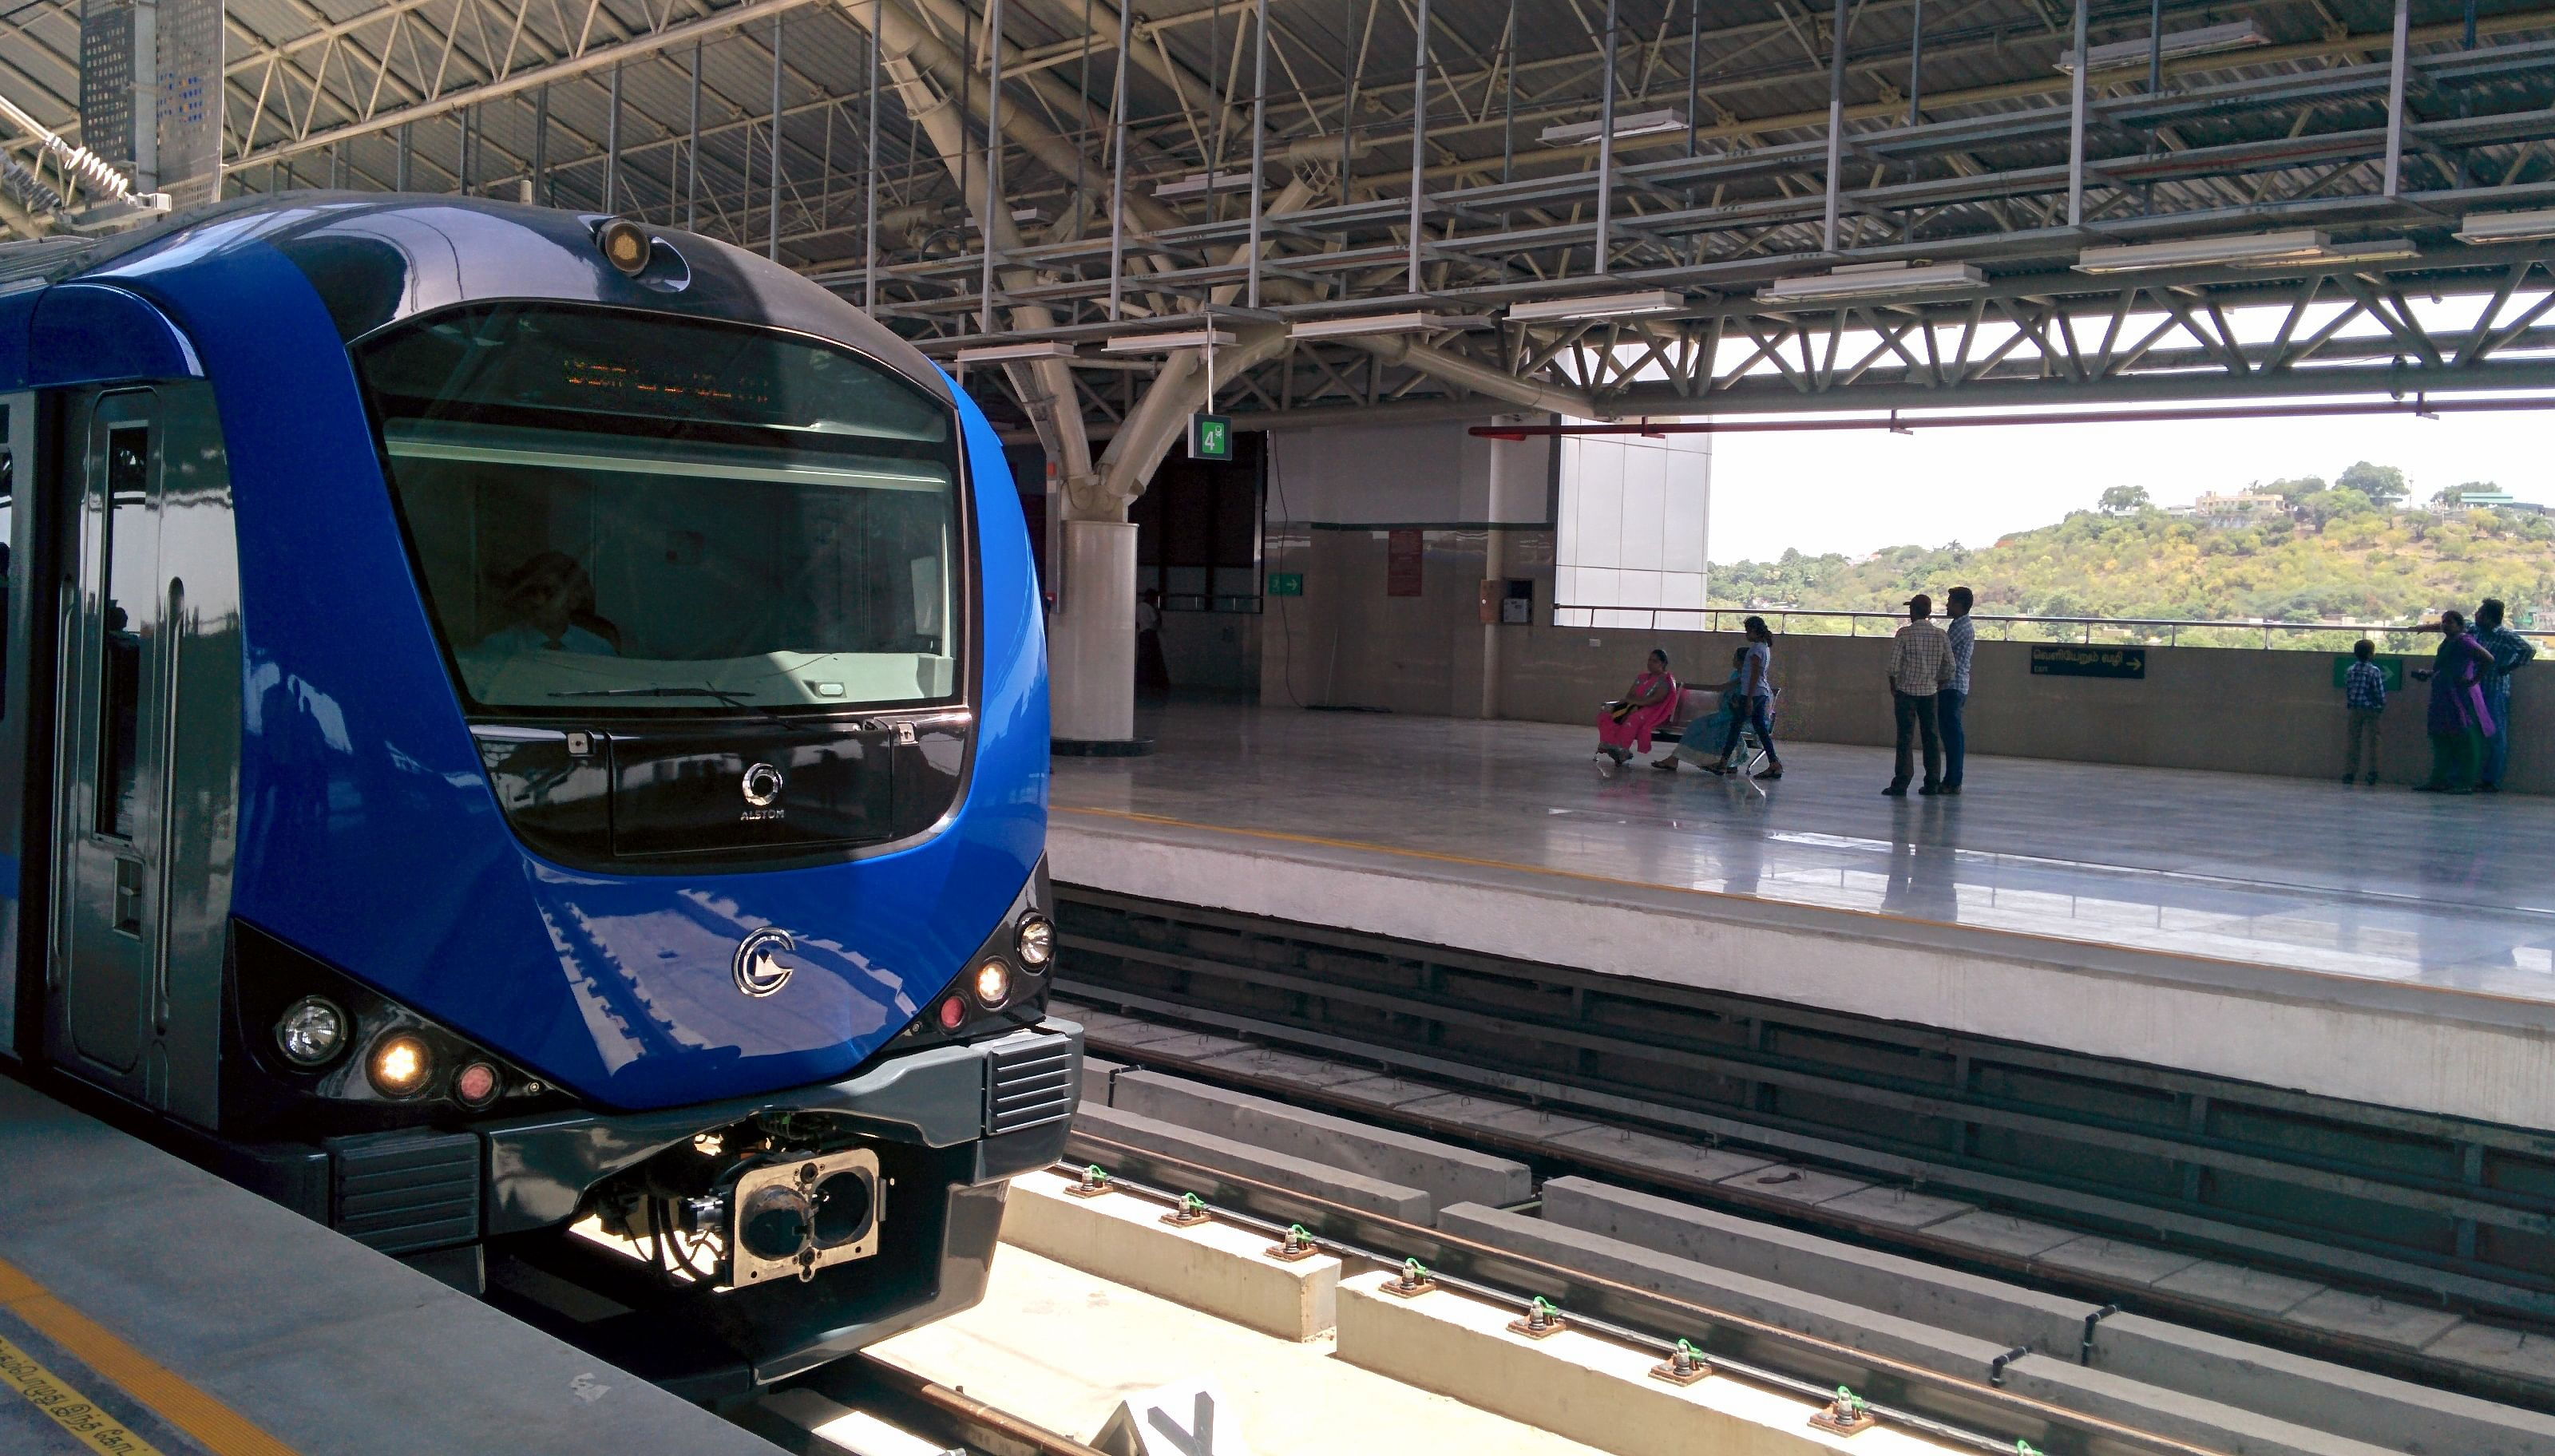 Chennai Central Metro station